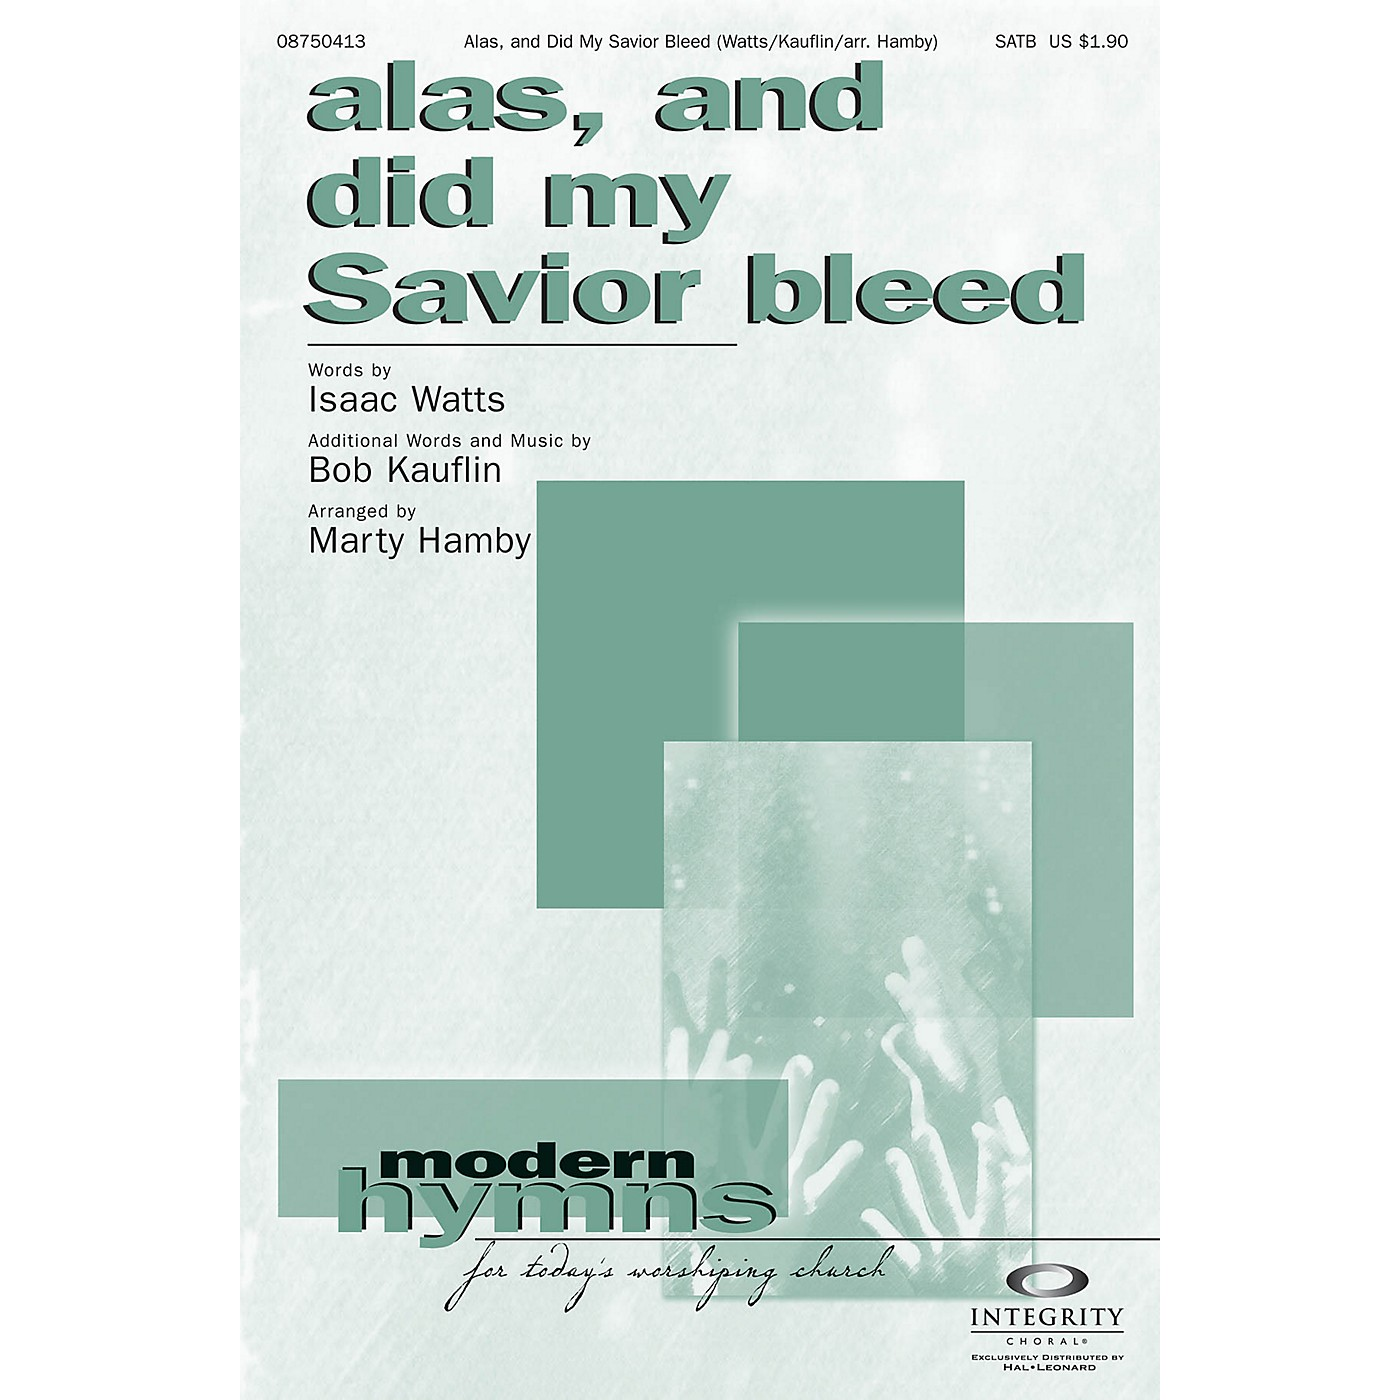 Integrity Choral Alas, and Did My Savior Bleed SATB Arranged by Marty Hamby thumbnail